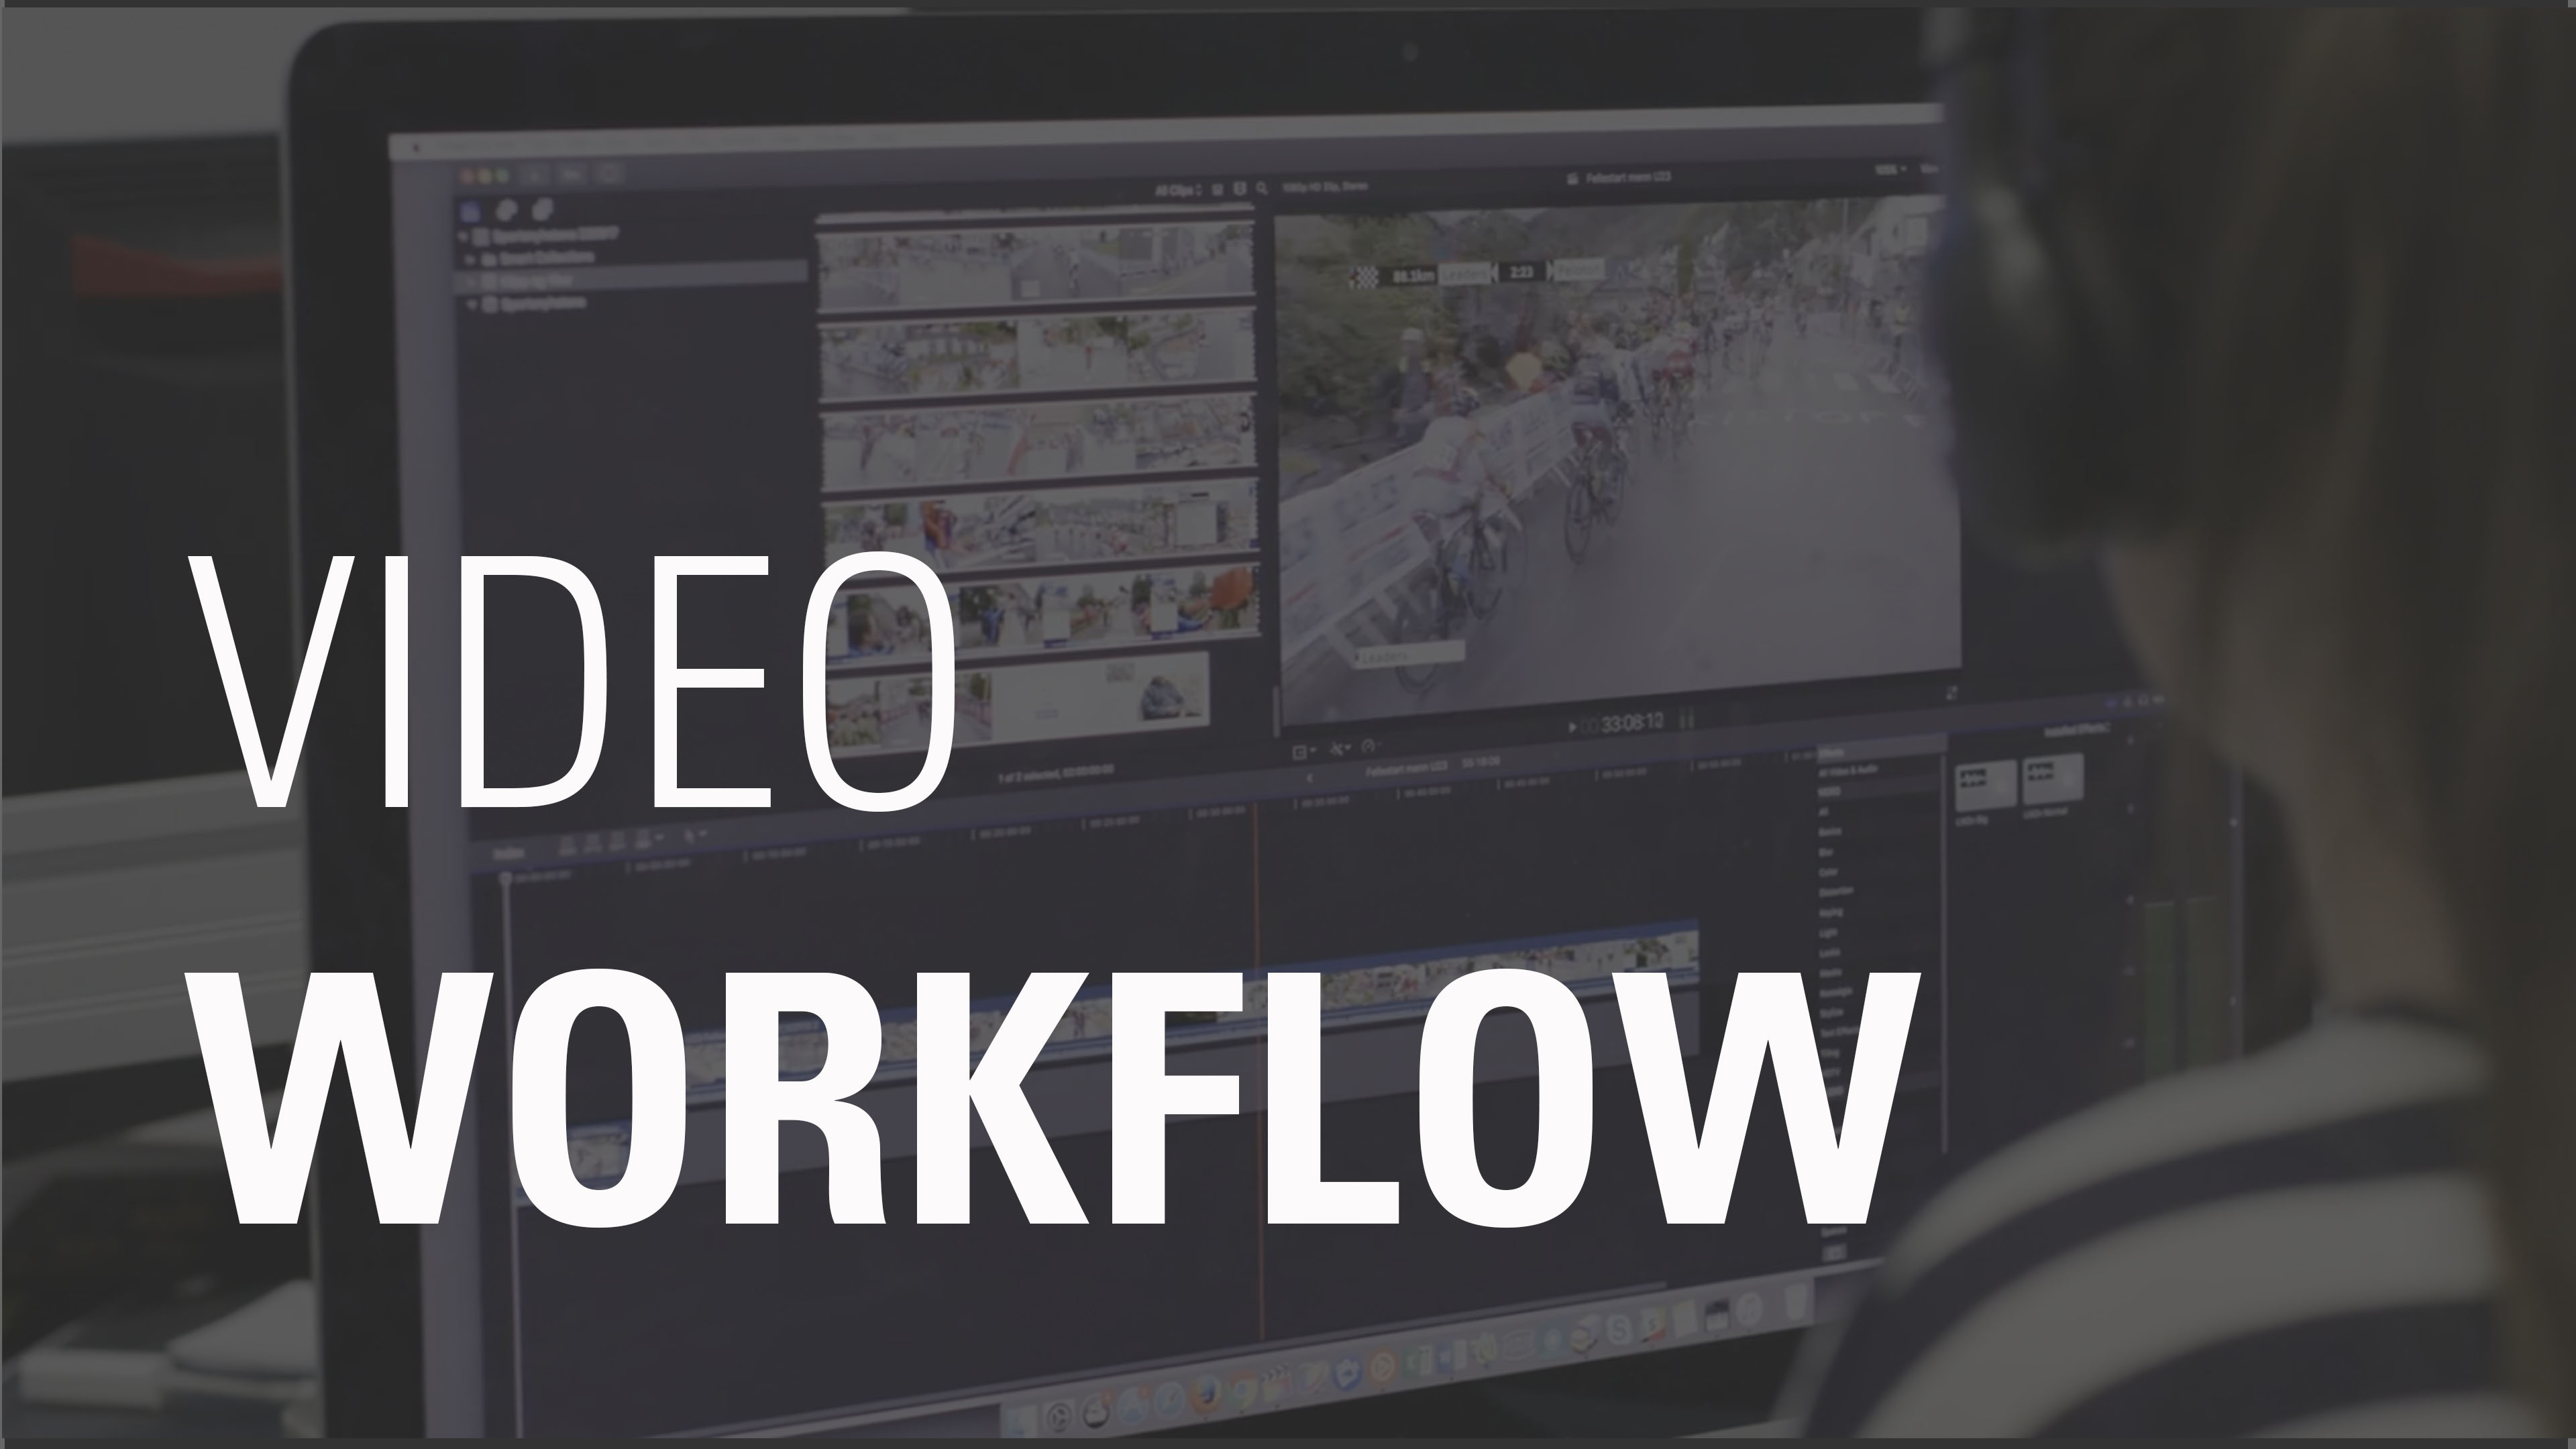 VIDEO WORKFLOW RESOURCES Artboard 1 copy 2